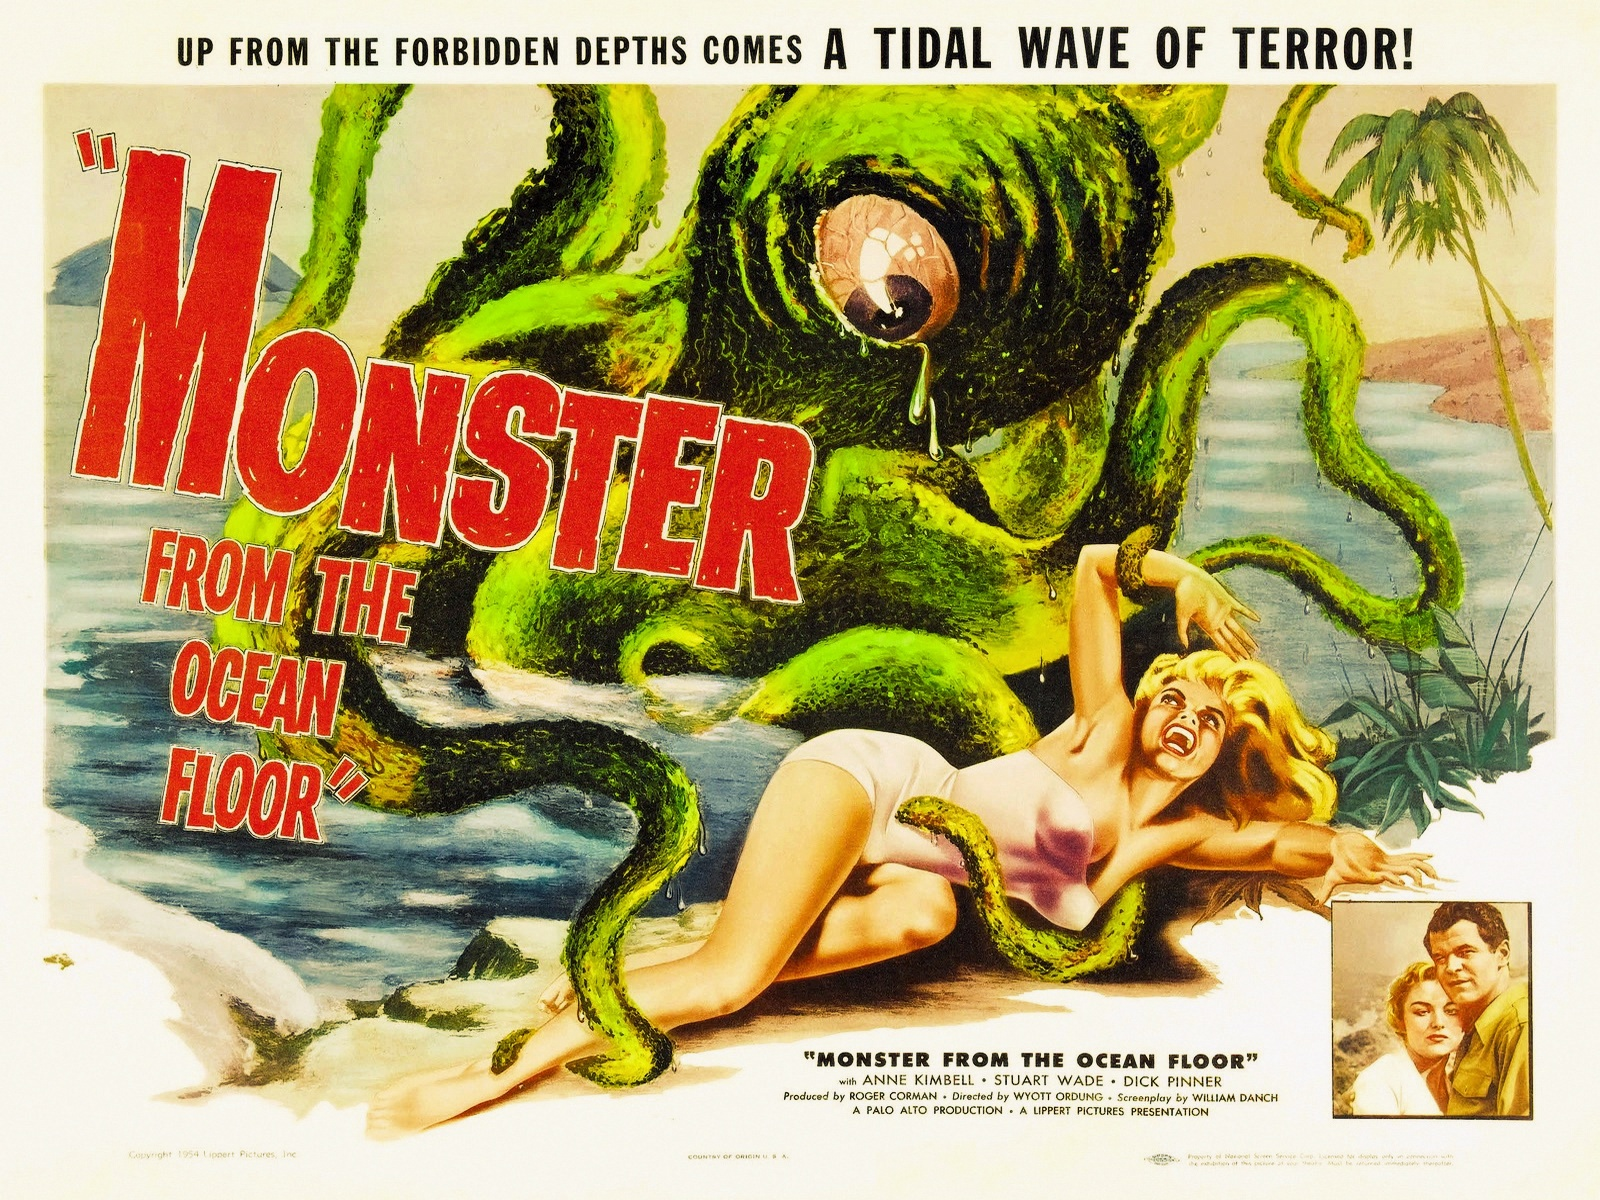 http://3.bp.blogspot.com/-sdxH2hXDSA4/T1oOZY6tVKI/AAAAAAAAGzc/6SALsL8aavk/s1600/monster-from-the-ocean-floor.jpg